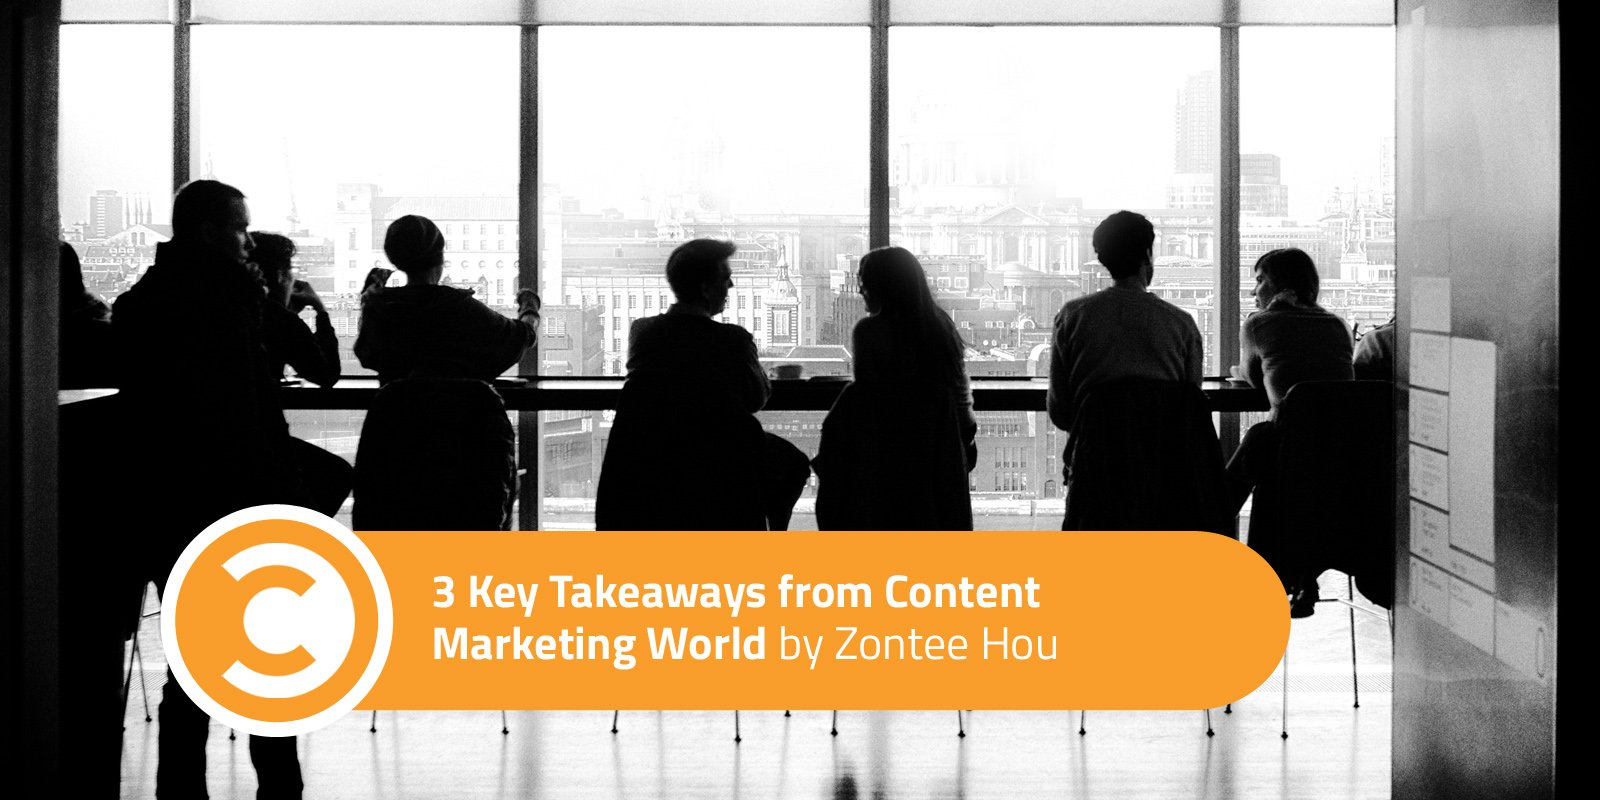 3 Key Takeaways from Content Marketing World